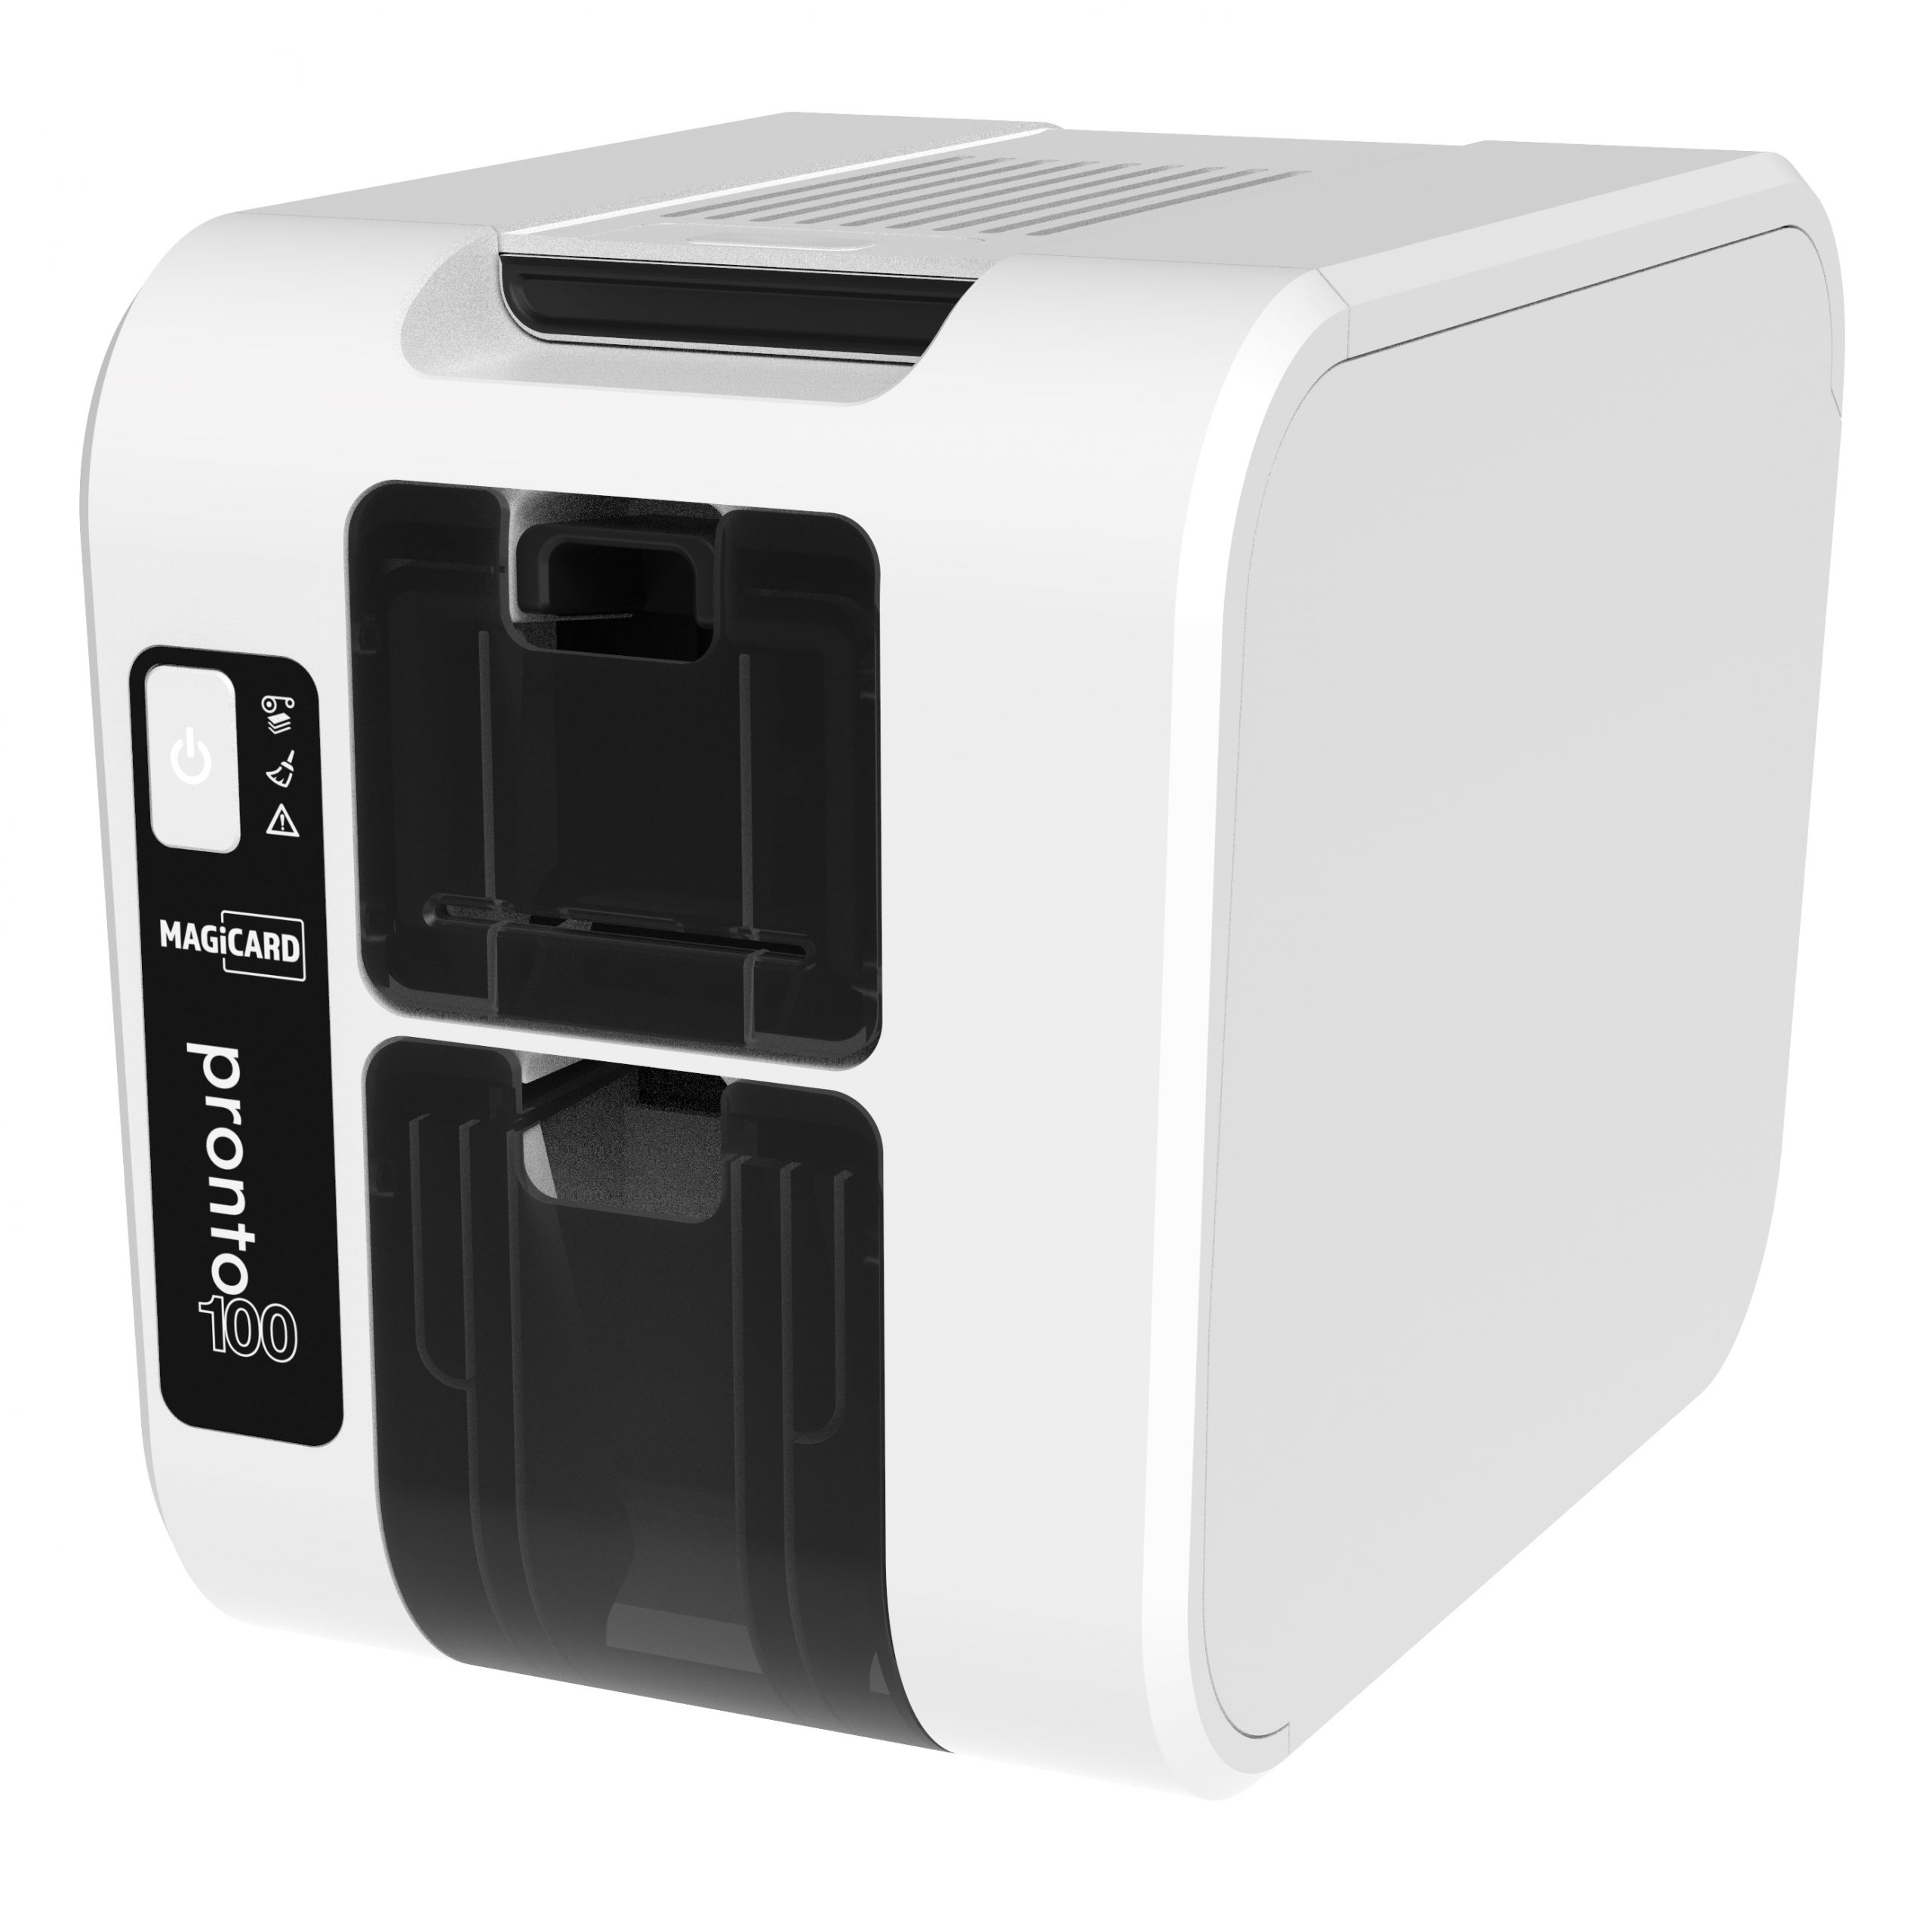 Magicard Pronto100 ID Card Printer 3100-0001